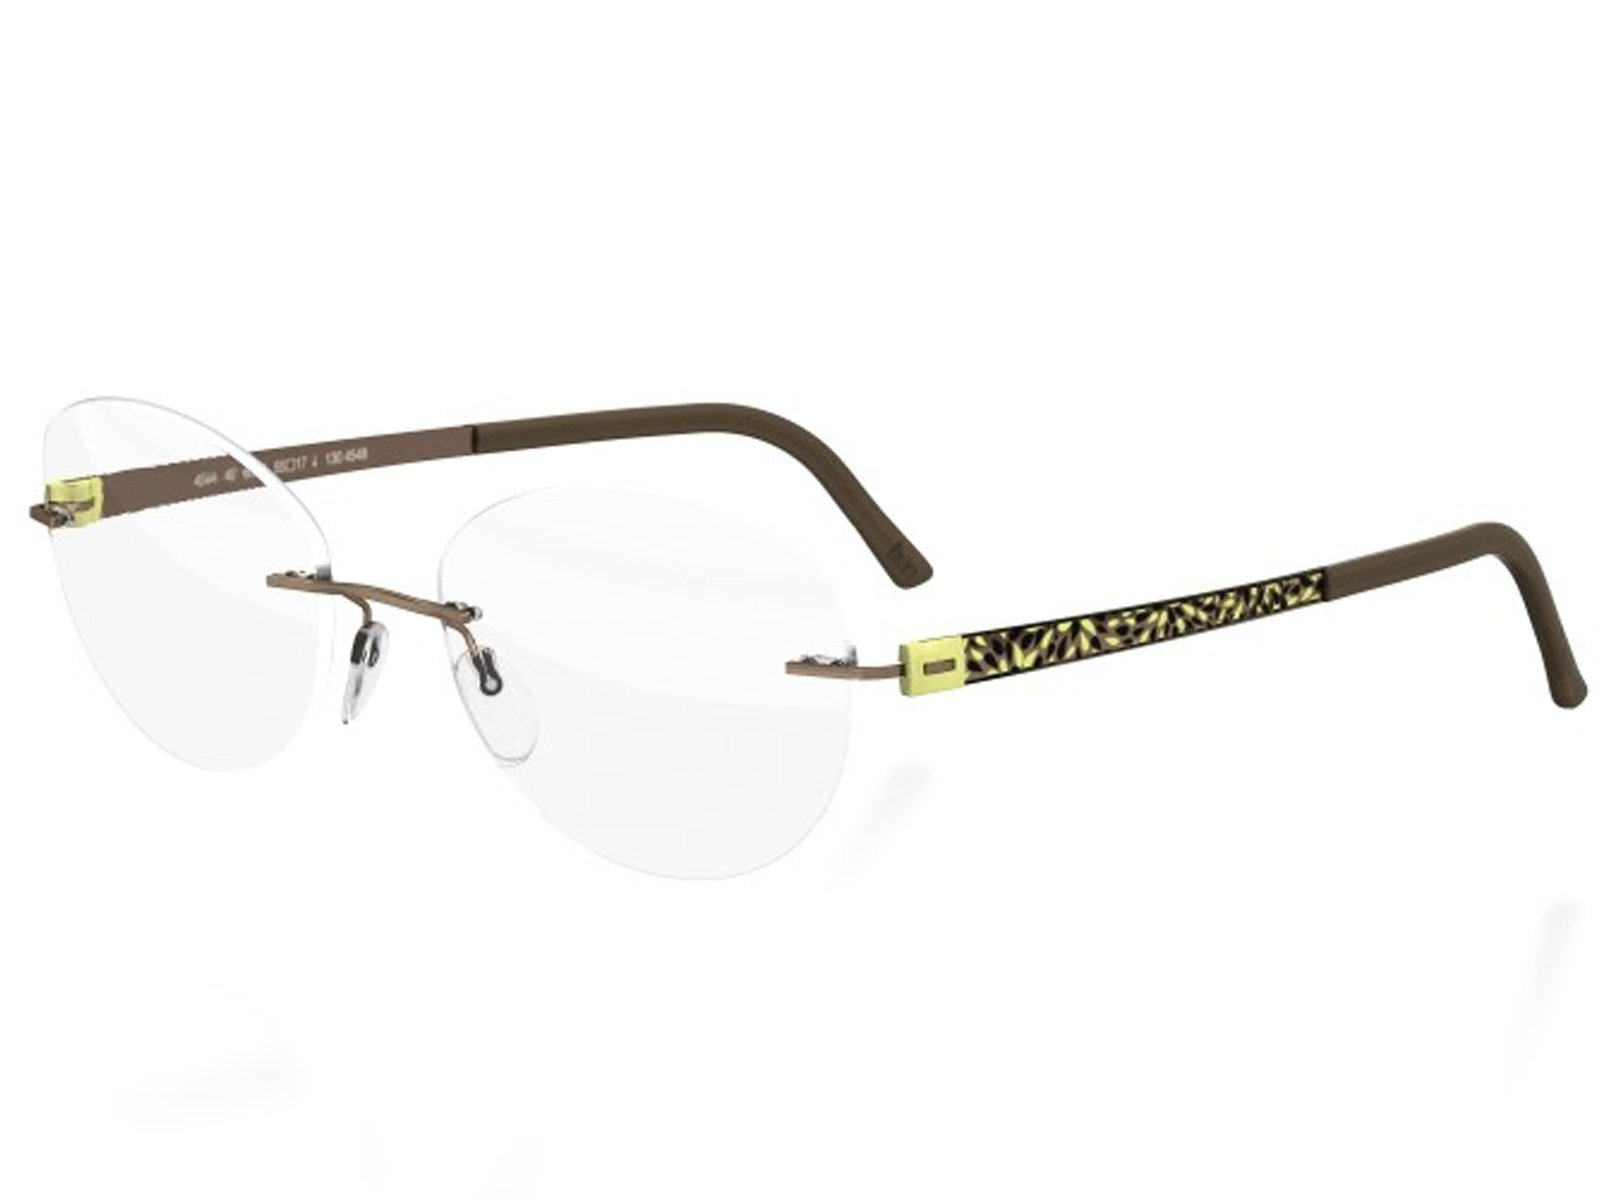 Silhouette TITAN ACCENT FLORA EDITION Eyeglasses (CITRIC KHAKI 53mm-19mm-135mm, one size) by Silhouette